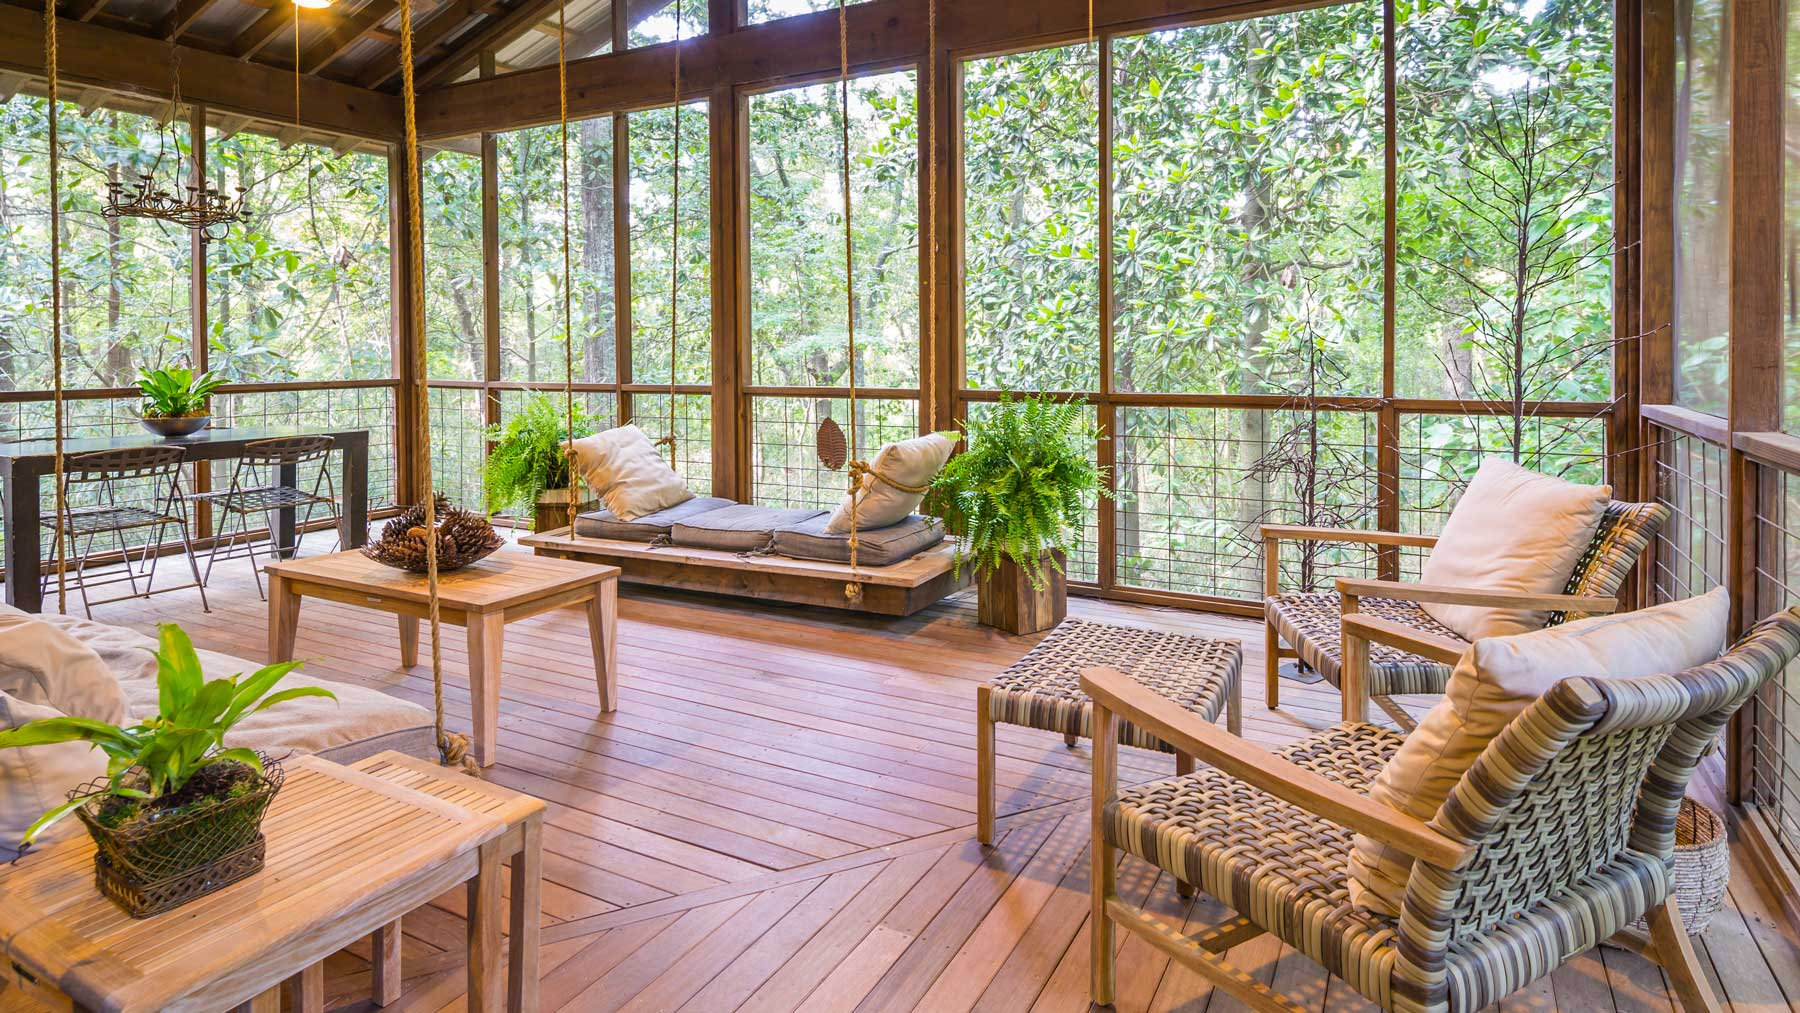 Fairhope Architect's Home Is Nested In The Woods